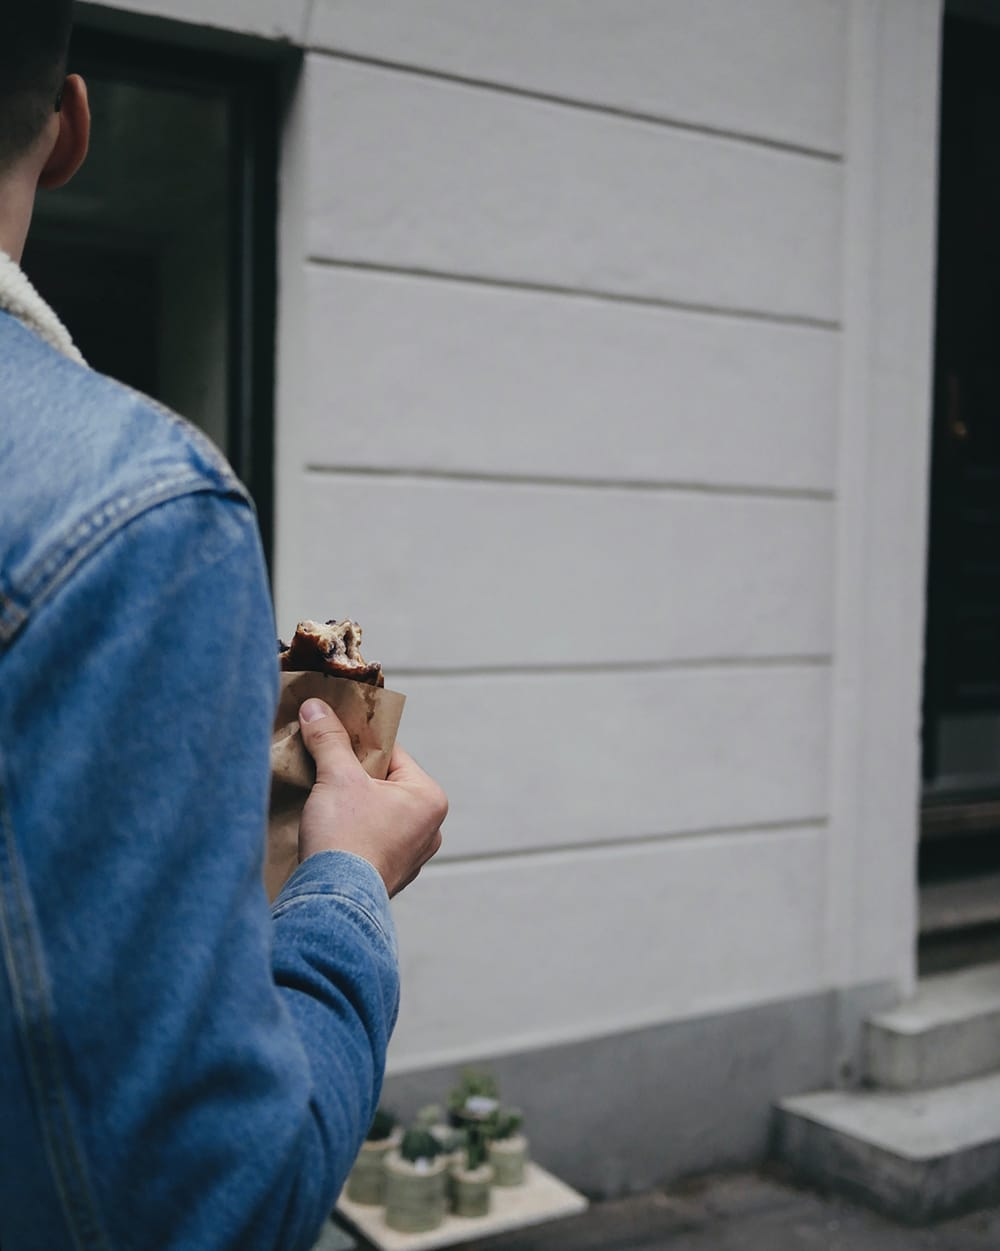 A young man eating sweet chocolate bun on the street. Copenhagen